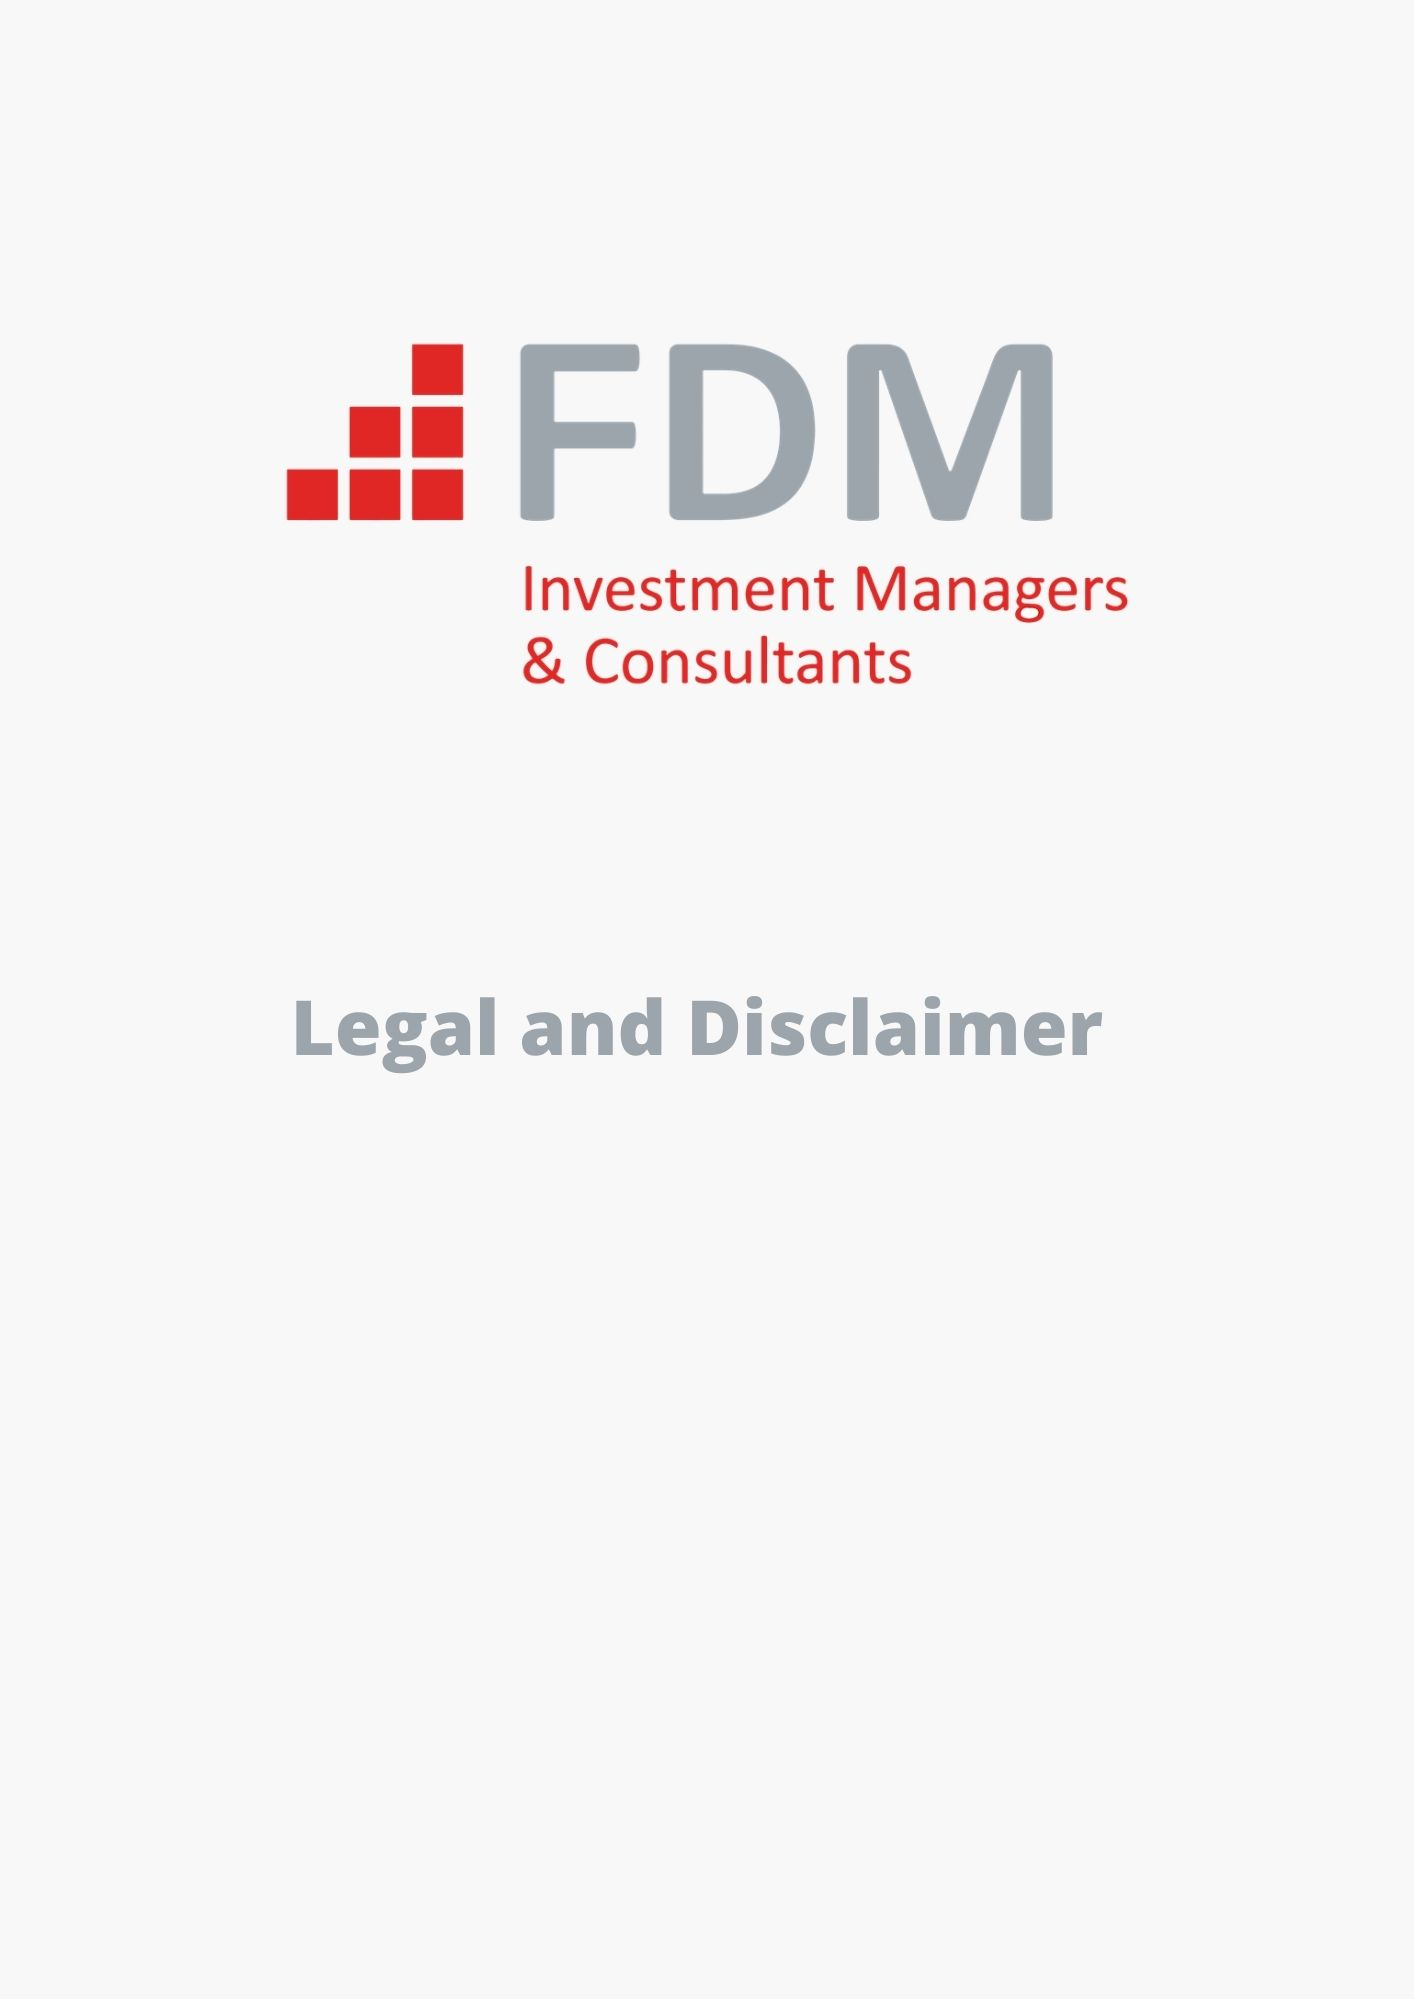 FDM Legal and Disclaimer